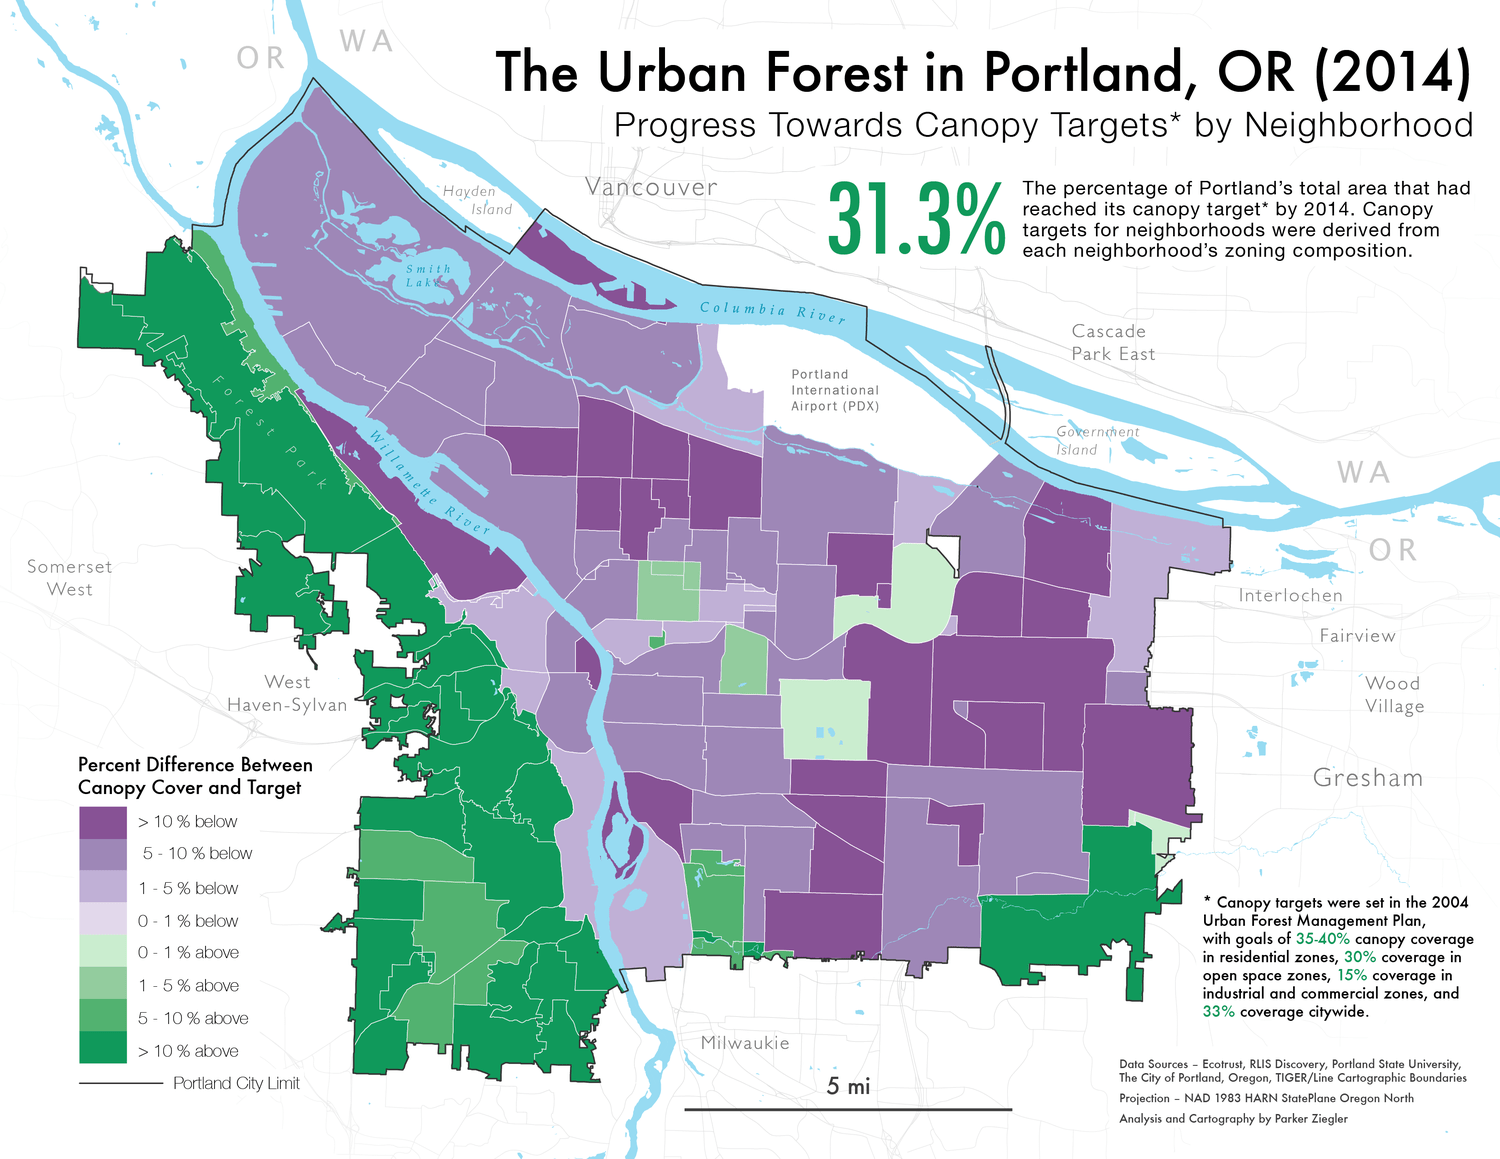 A map of Portland's urban canopy cover compared to city targets by neighborhood in 2014.